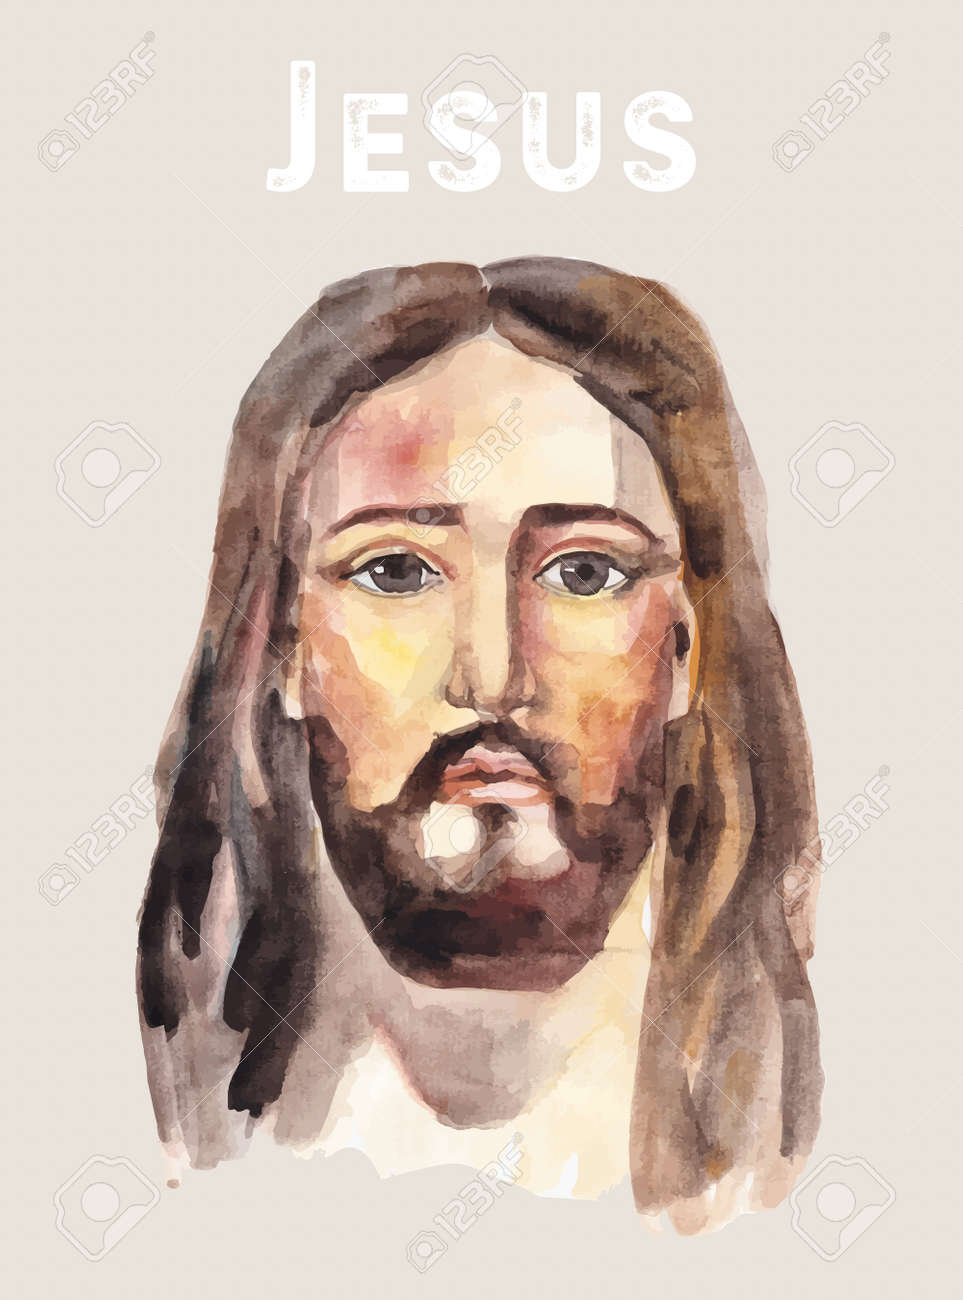 465 jesus head stock vector illustration and royalty free jesus